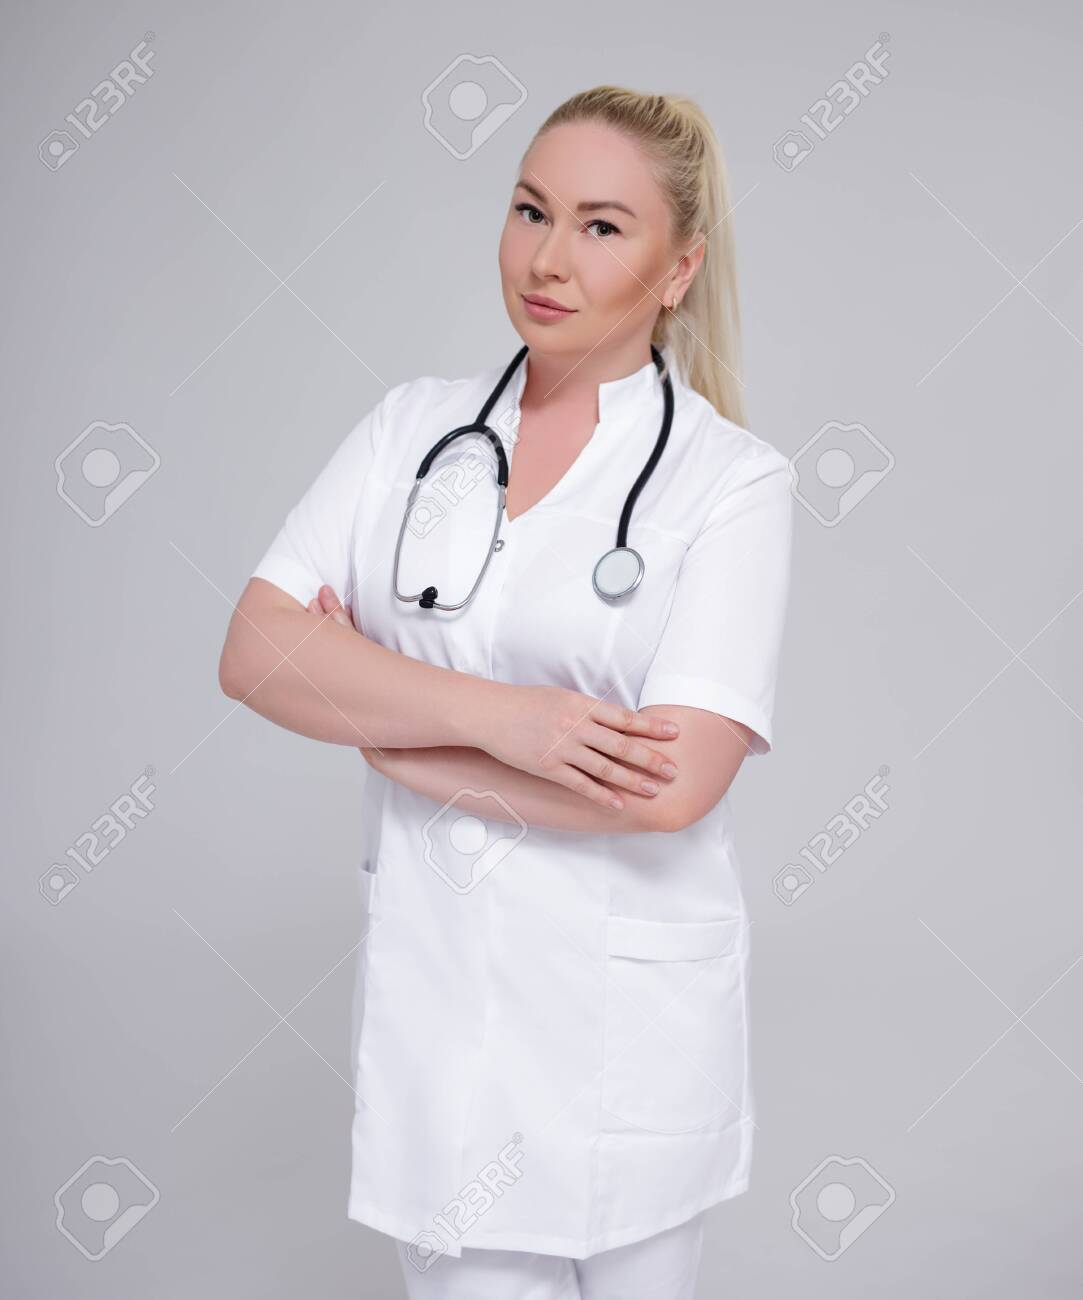 young female doctor posing over gray background - 146549228